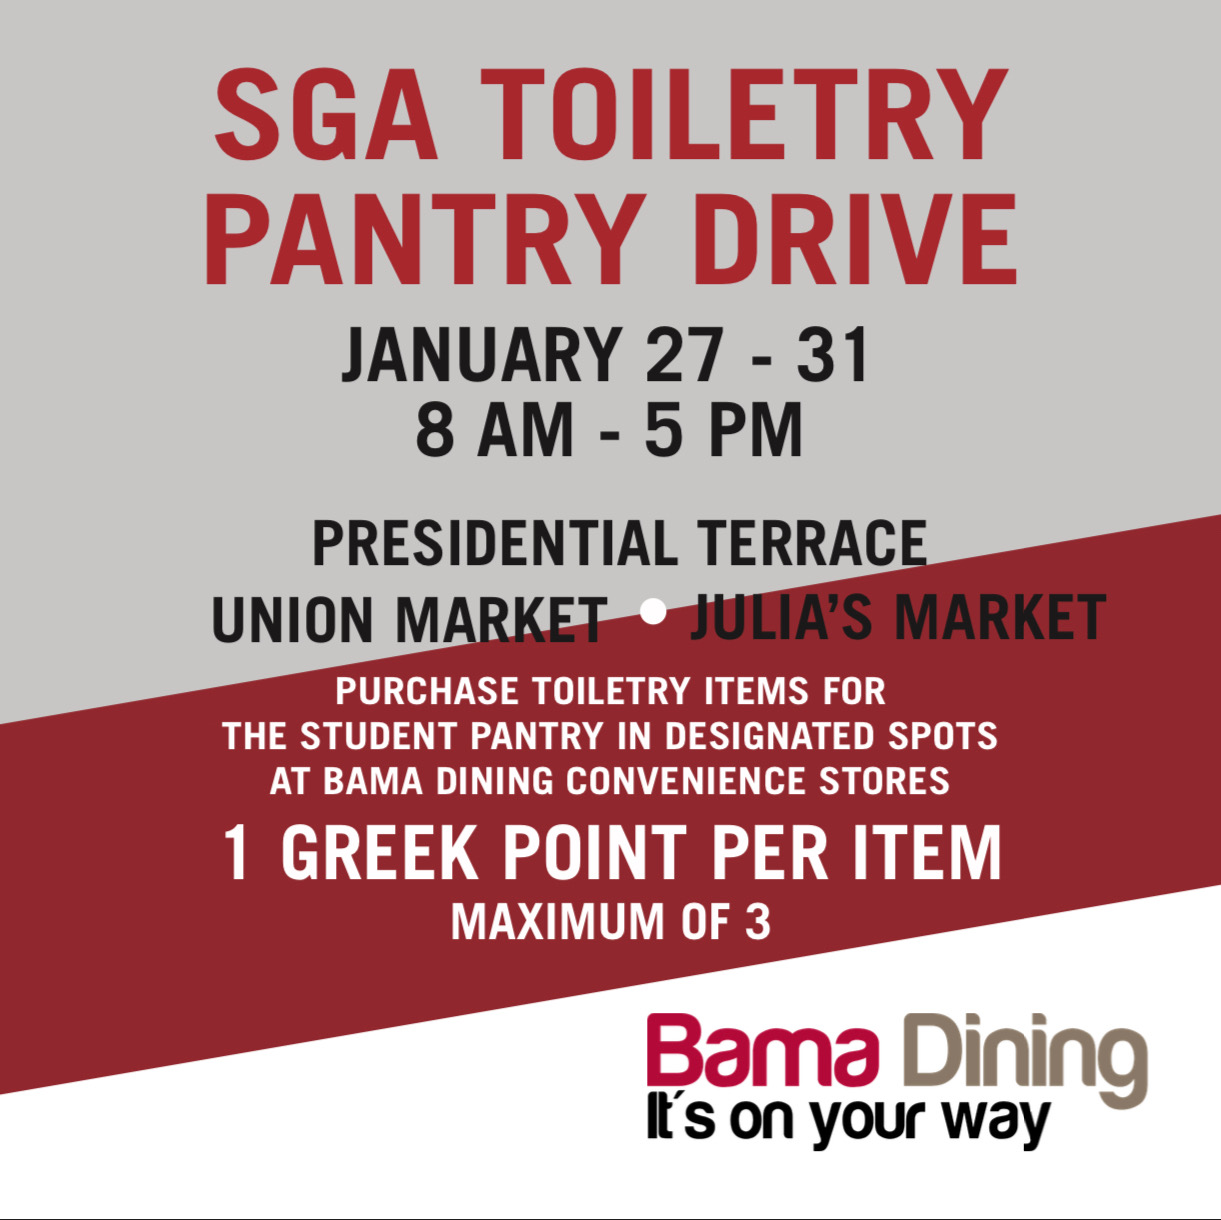 SGA Toiletry Pantry Drive January 27 through 31. 8am - 5 pm. Drop off at Presidential Terrace, Union Market or Julia's Market. purchase toiletry items for the student pantry in designated spots at bama dining convenience stores. 1 greek point per item (maximum of 3)